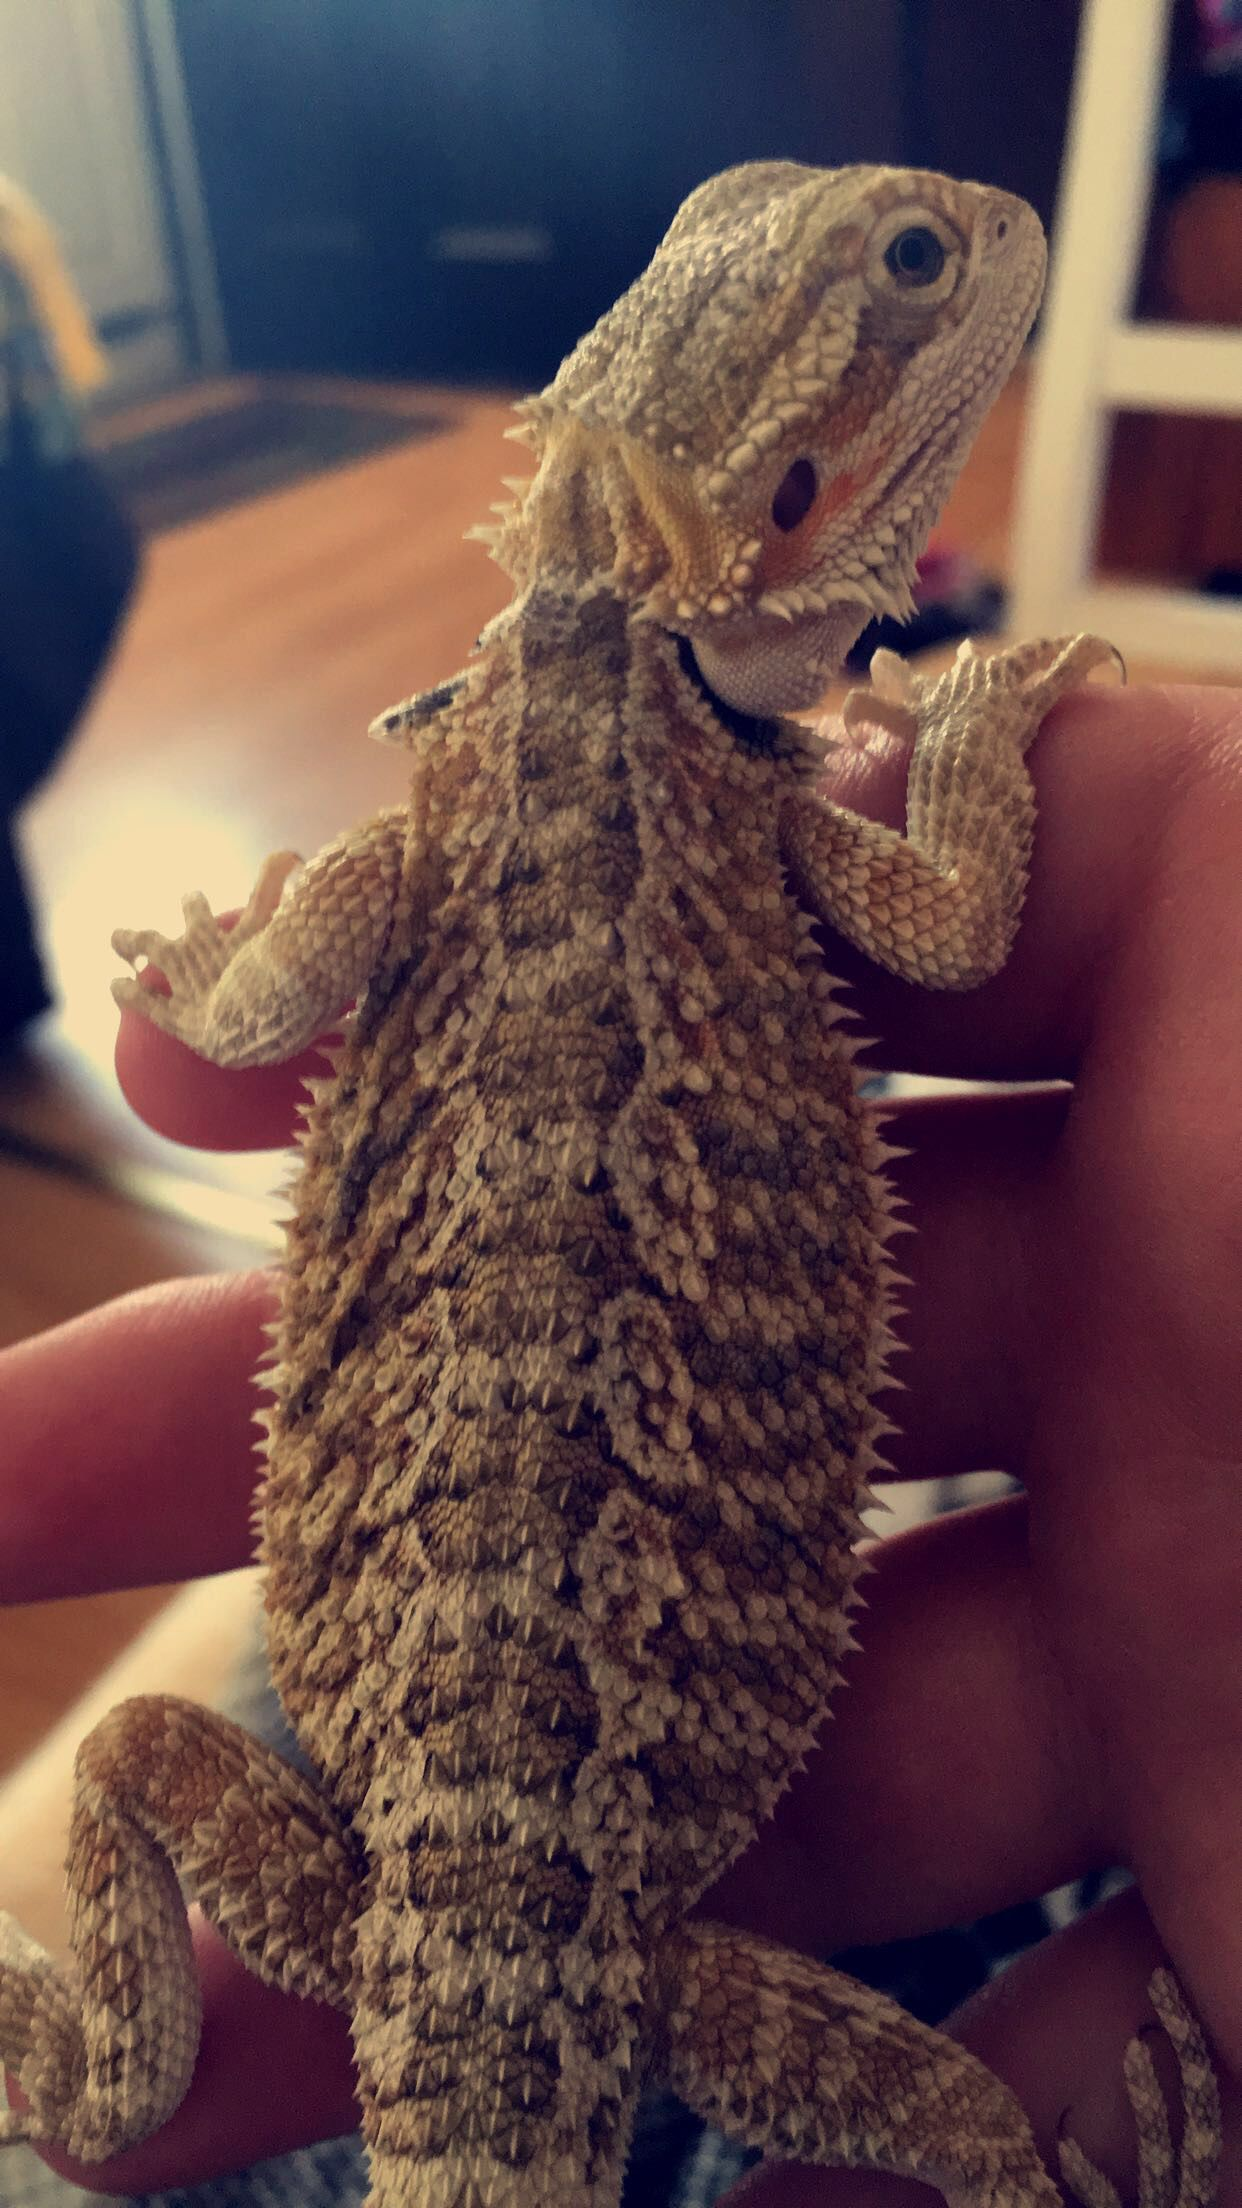 Look at these beautiful colors and patterns ️ beardie